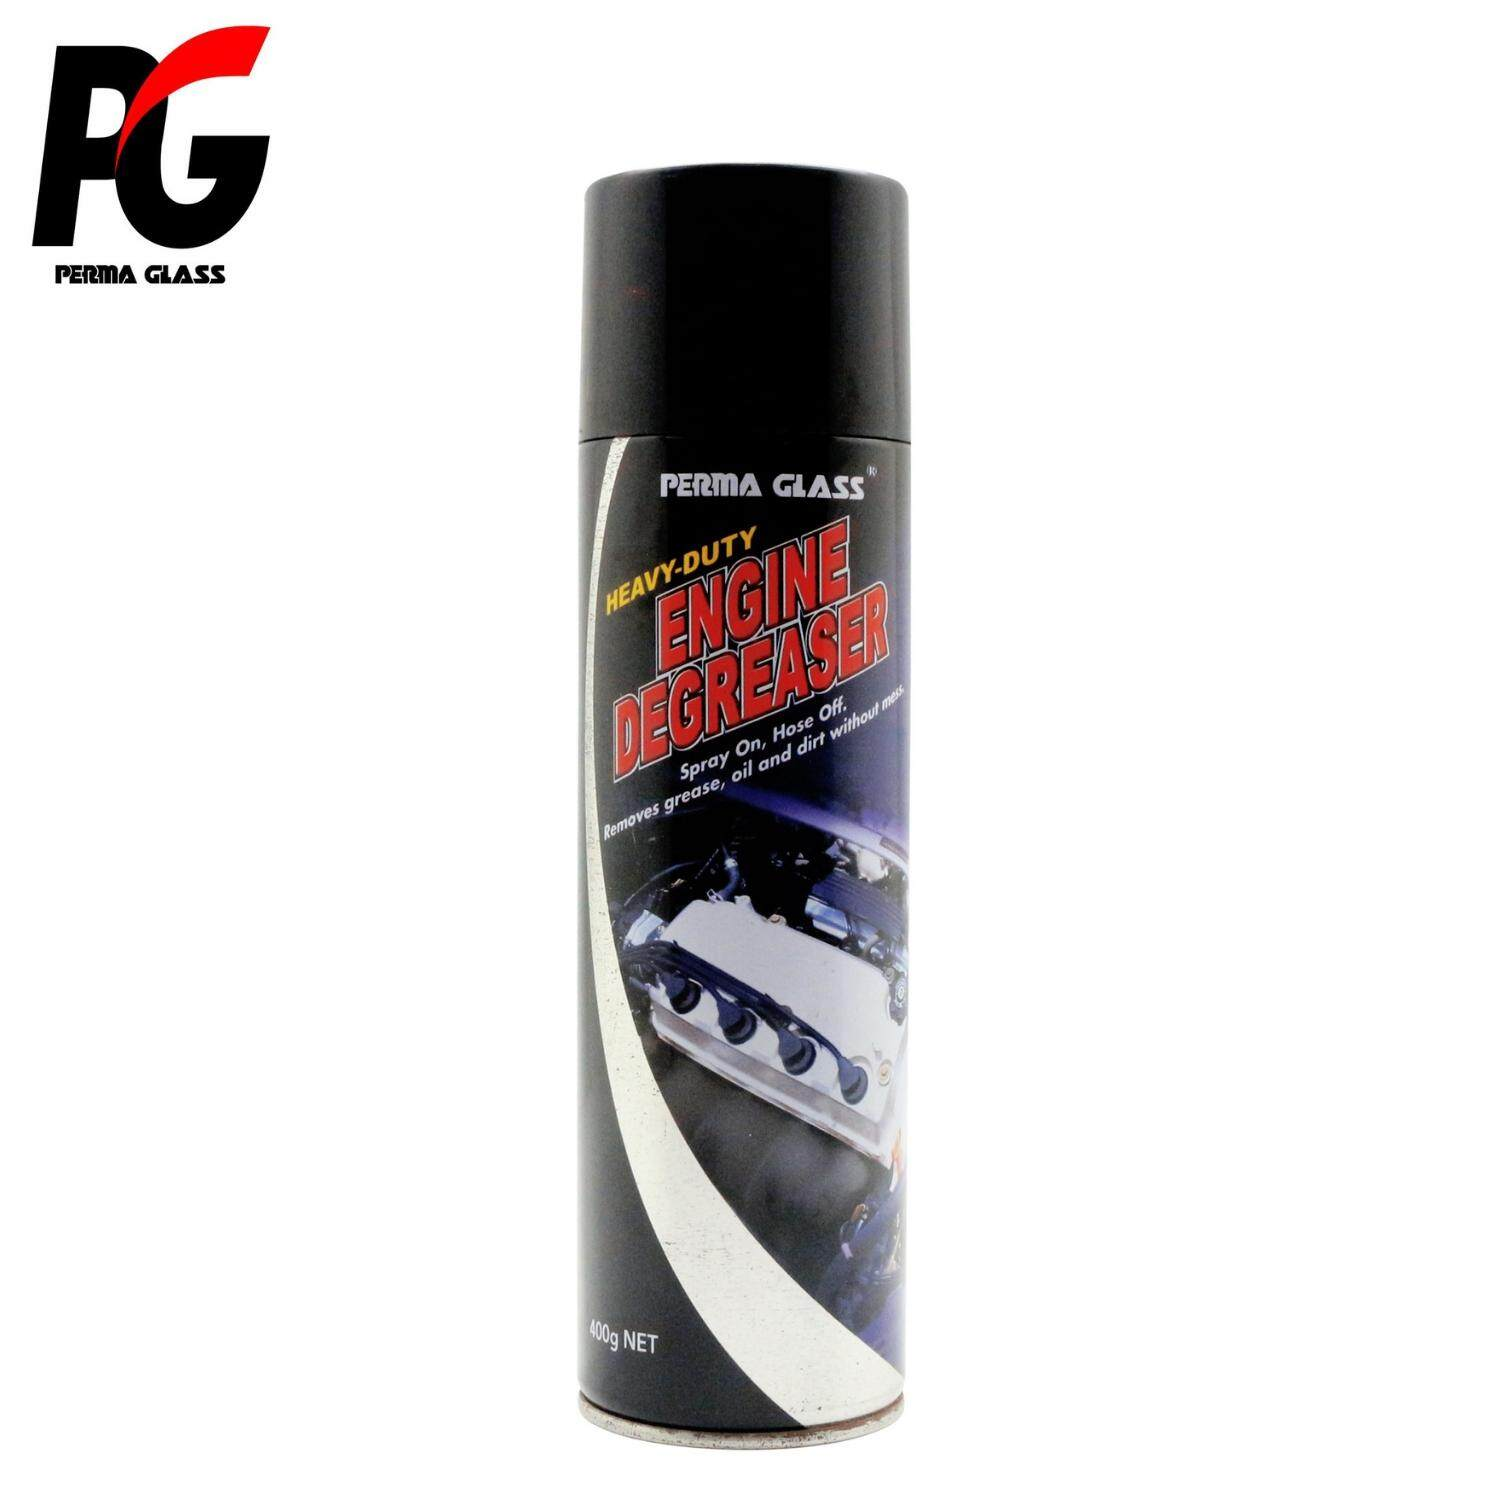 PG HEAVY DUTY ENGINE DEGREASER (400GM) - CAR CARE EXTERIOR